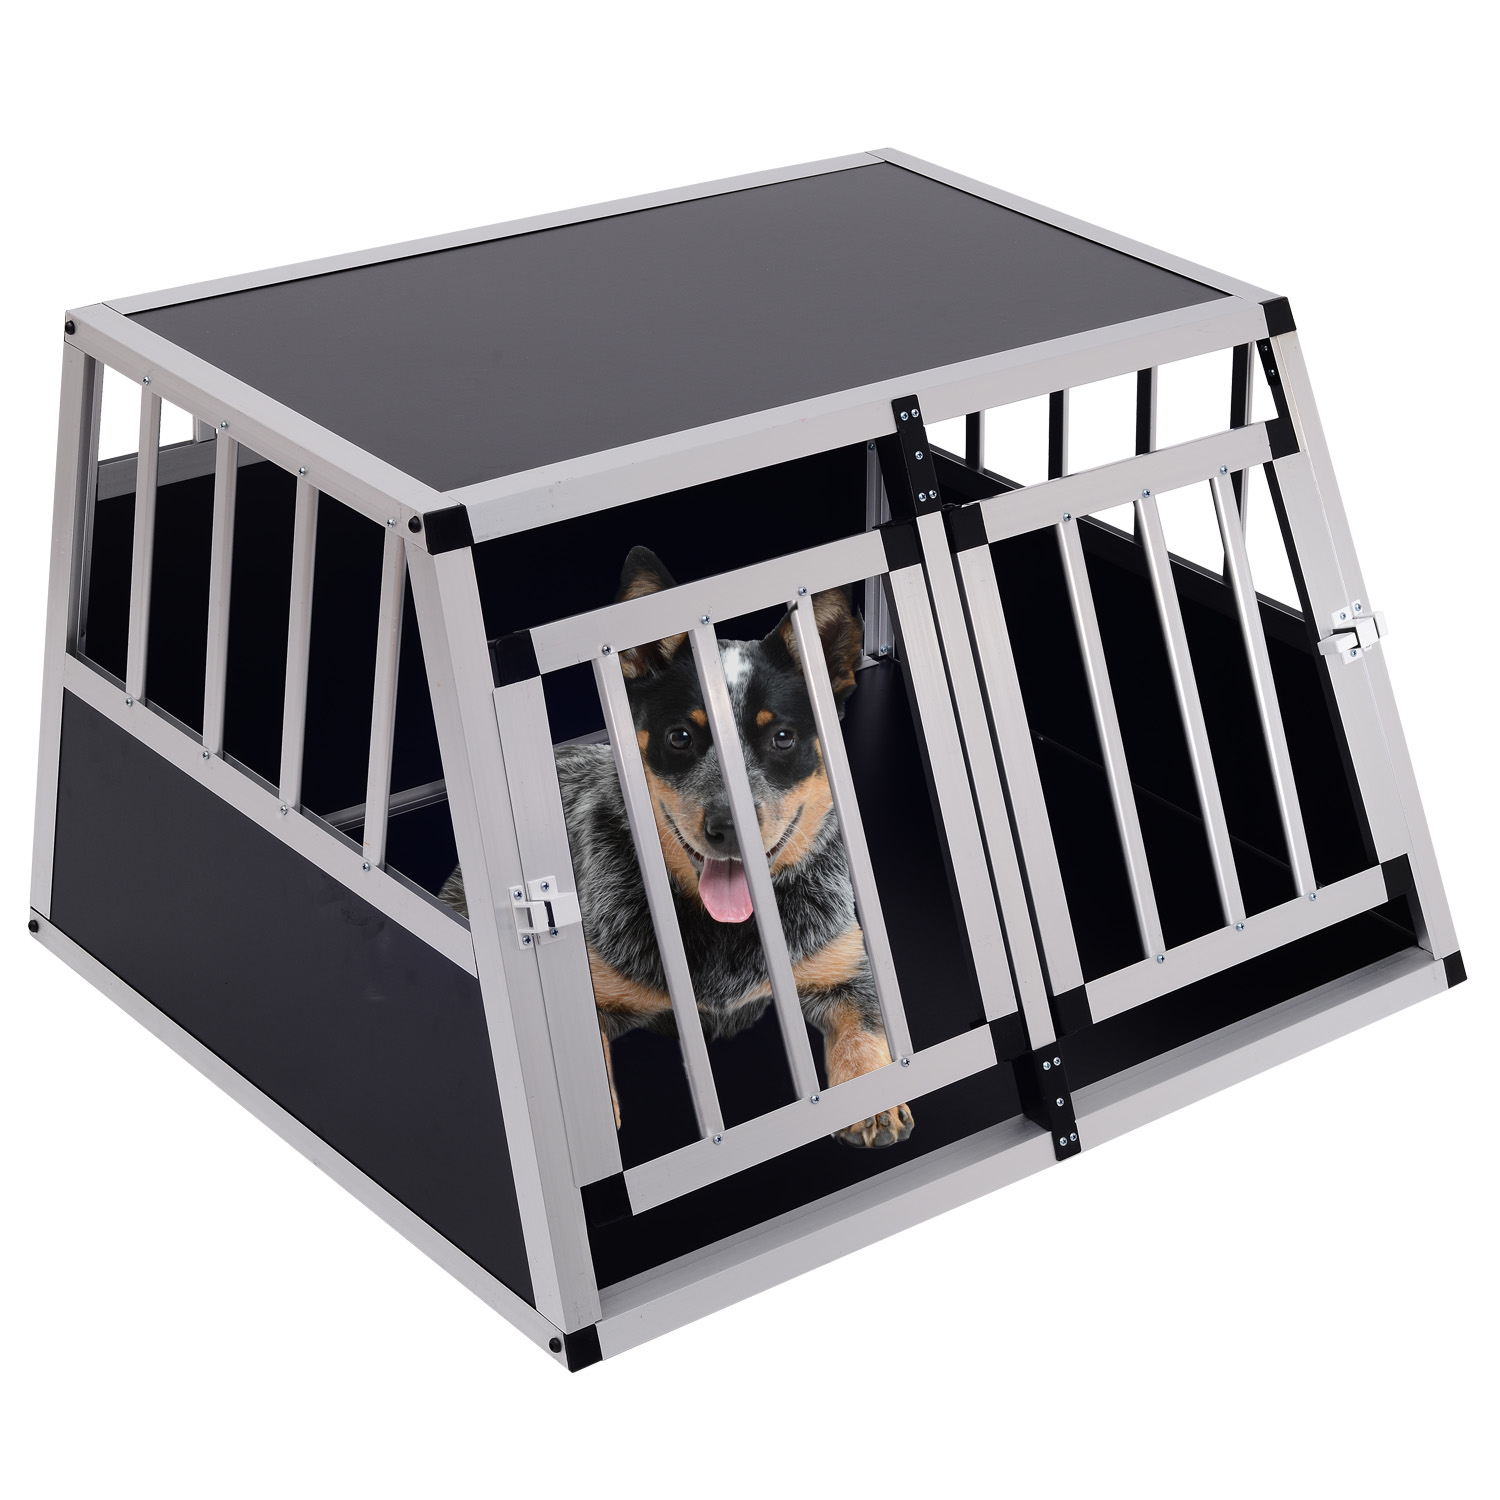 Aluminum Dog Cage Pet Transport Box Crate Door Divider Kennel